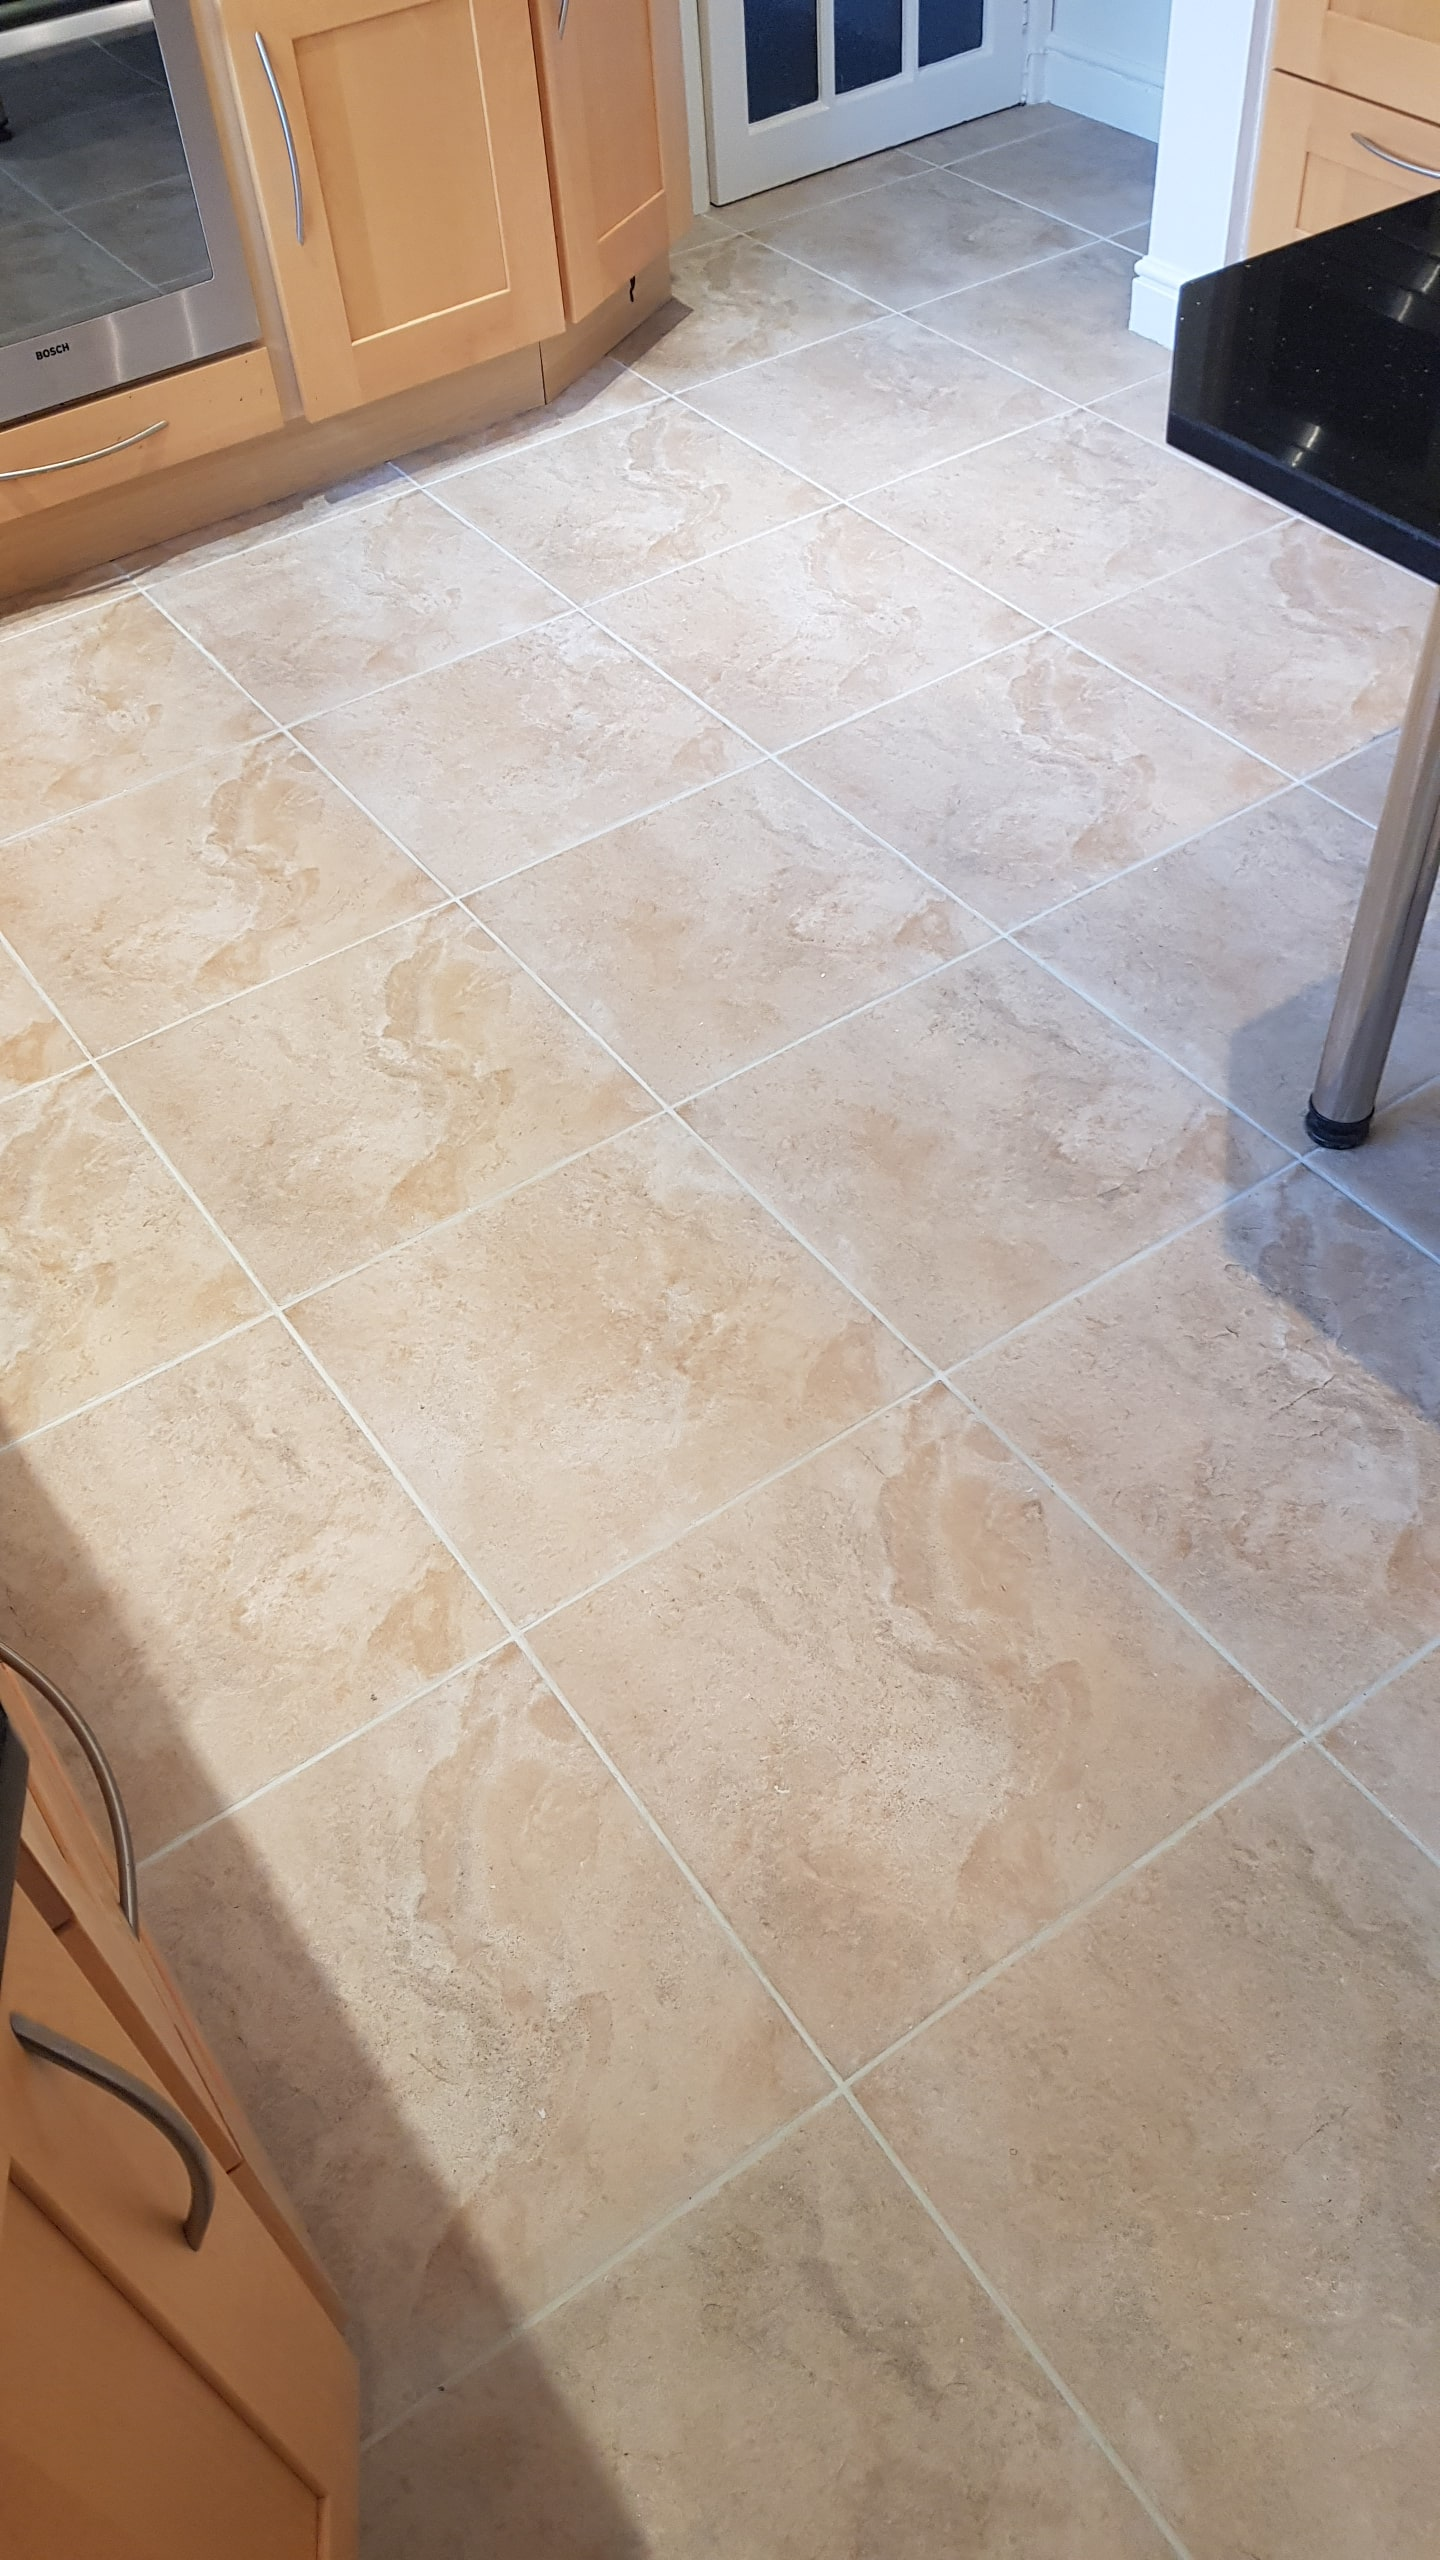 Ceramic Tiled Floor After Grout ReColour Wickersley Rotherham